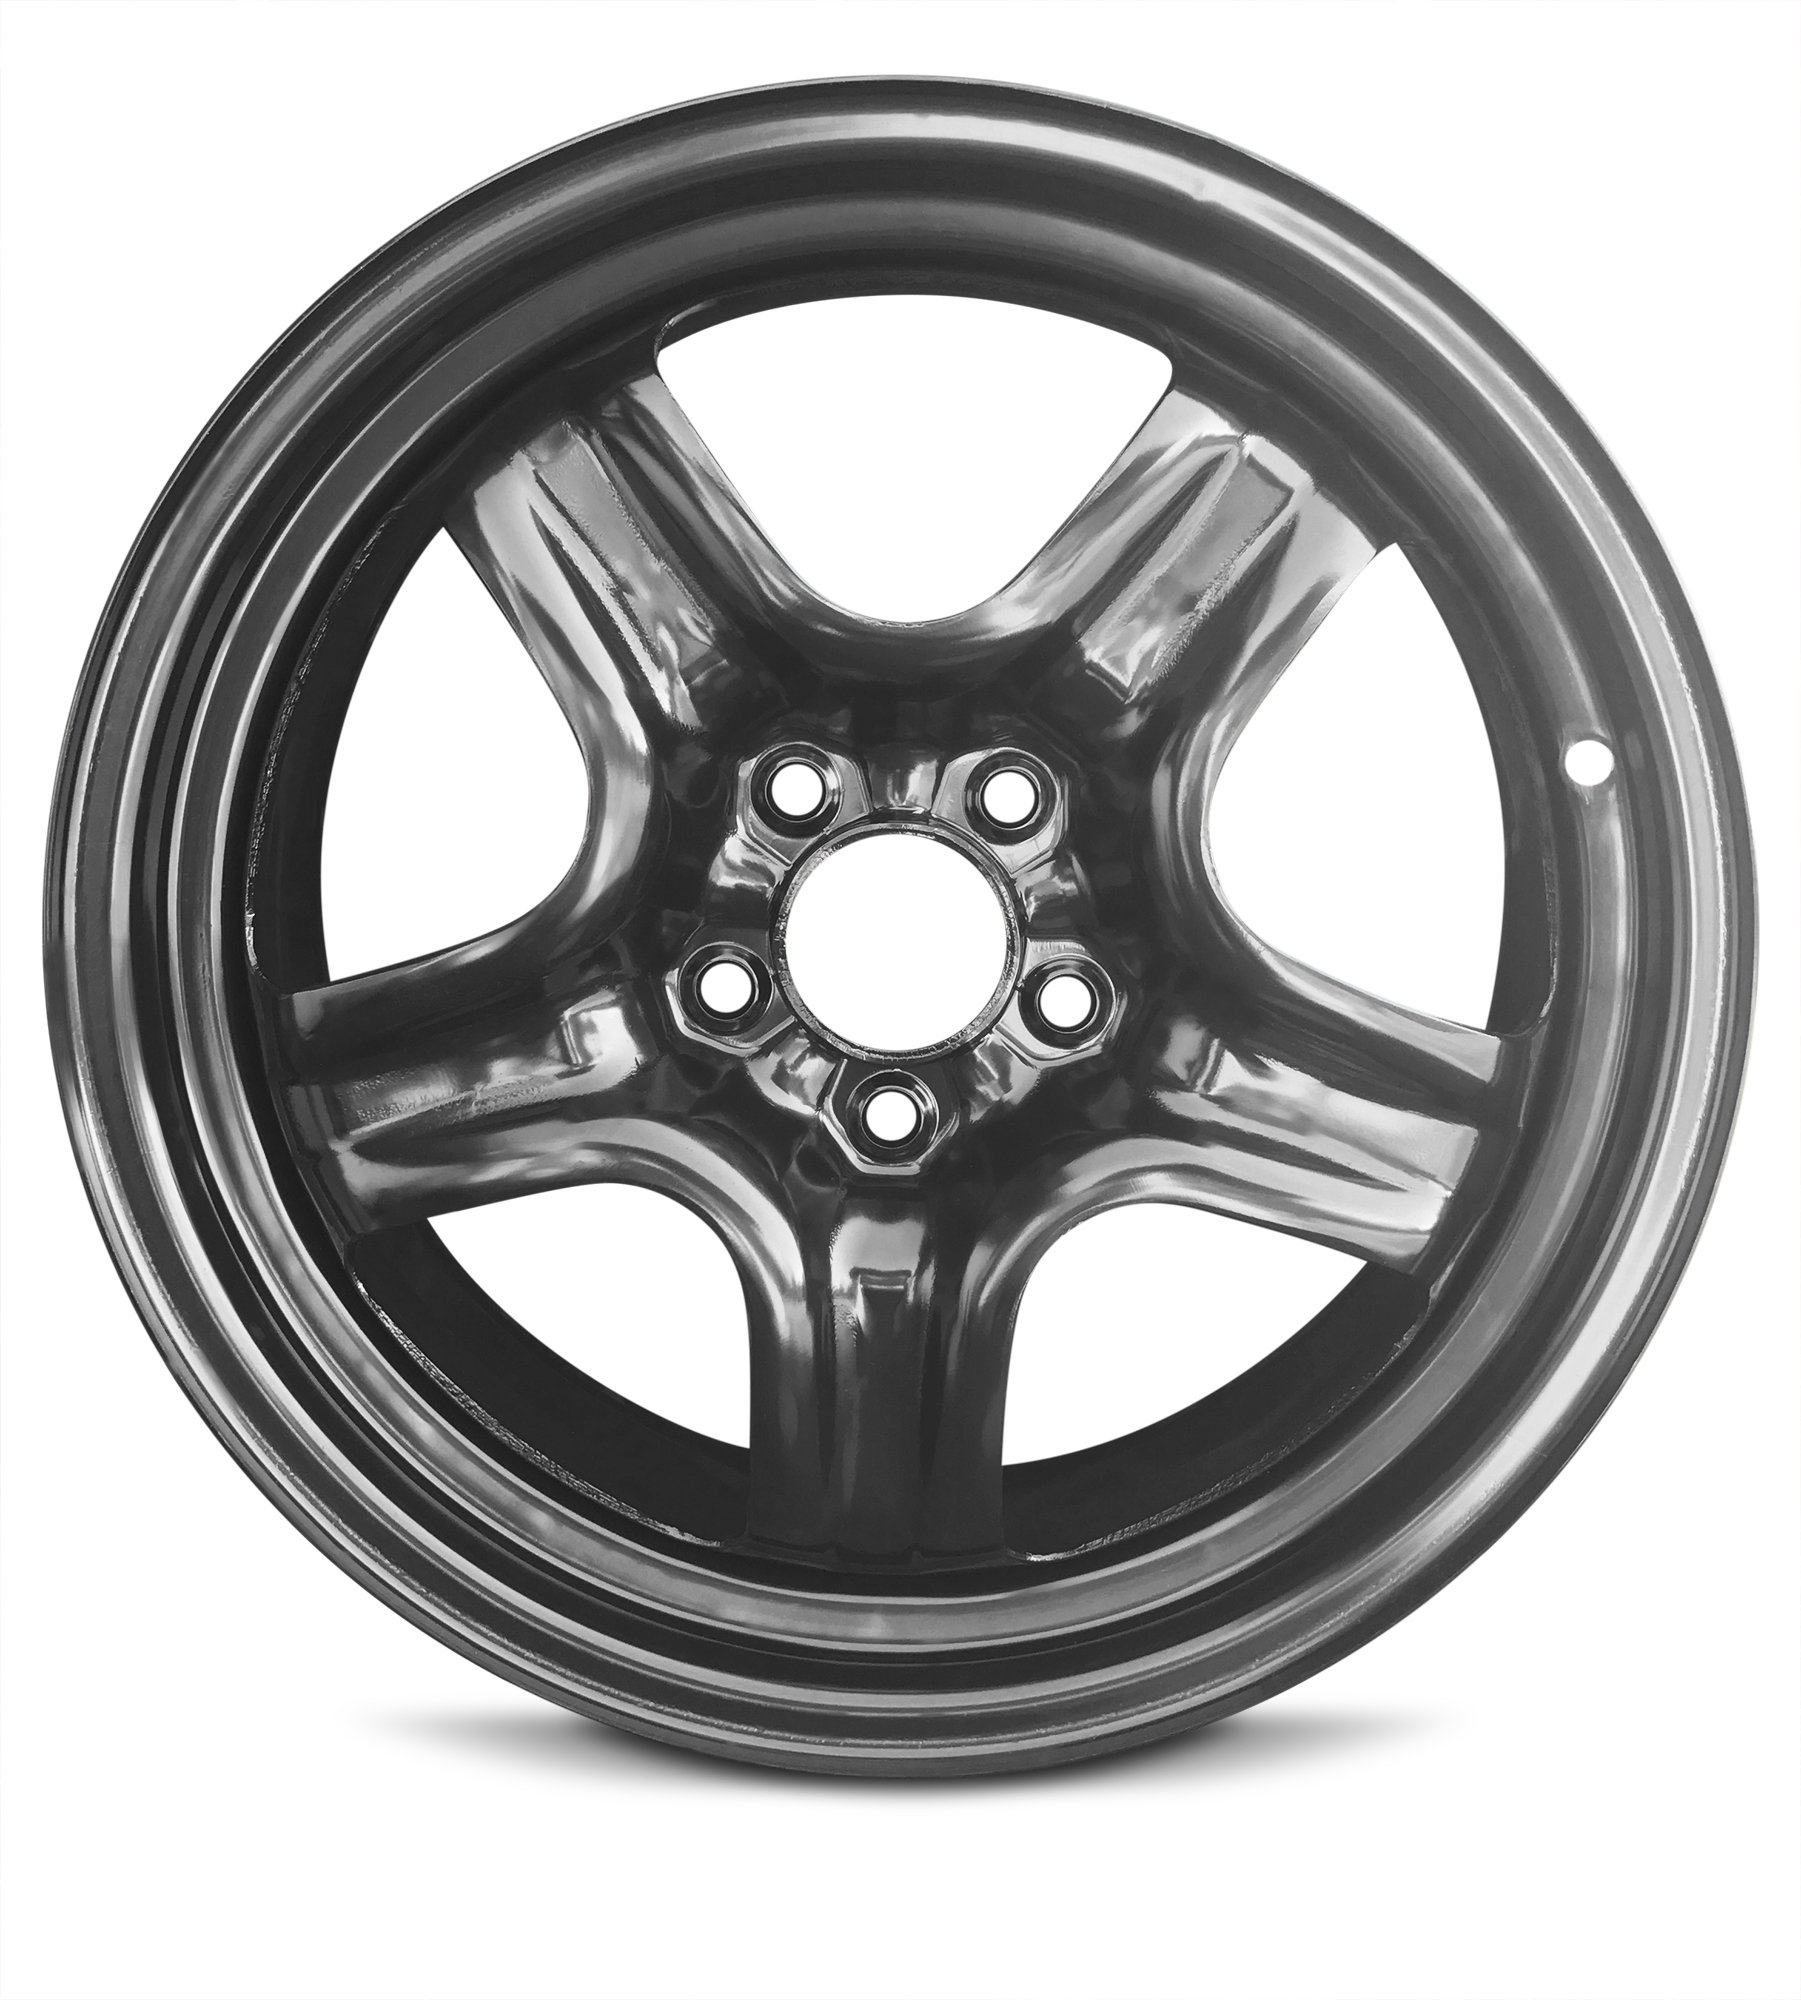 New 17x7 Chevrolet Malibu (08-12) Saturn Aura(07-10) Pontiac G6 (07-10) 5 Lug Black Steel Rim Full Size Replacement Steel Wheel